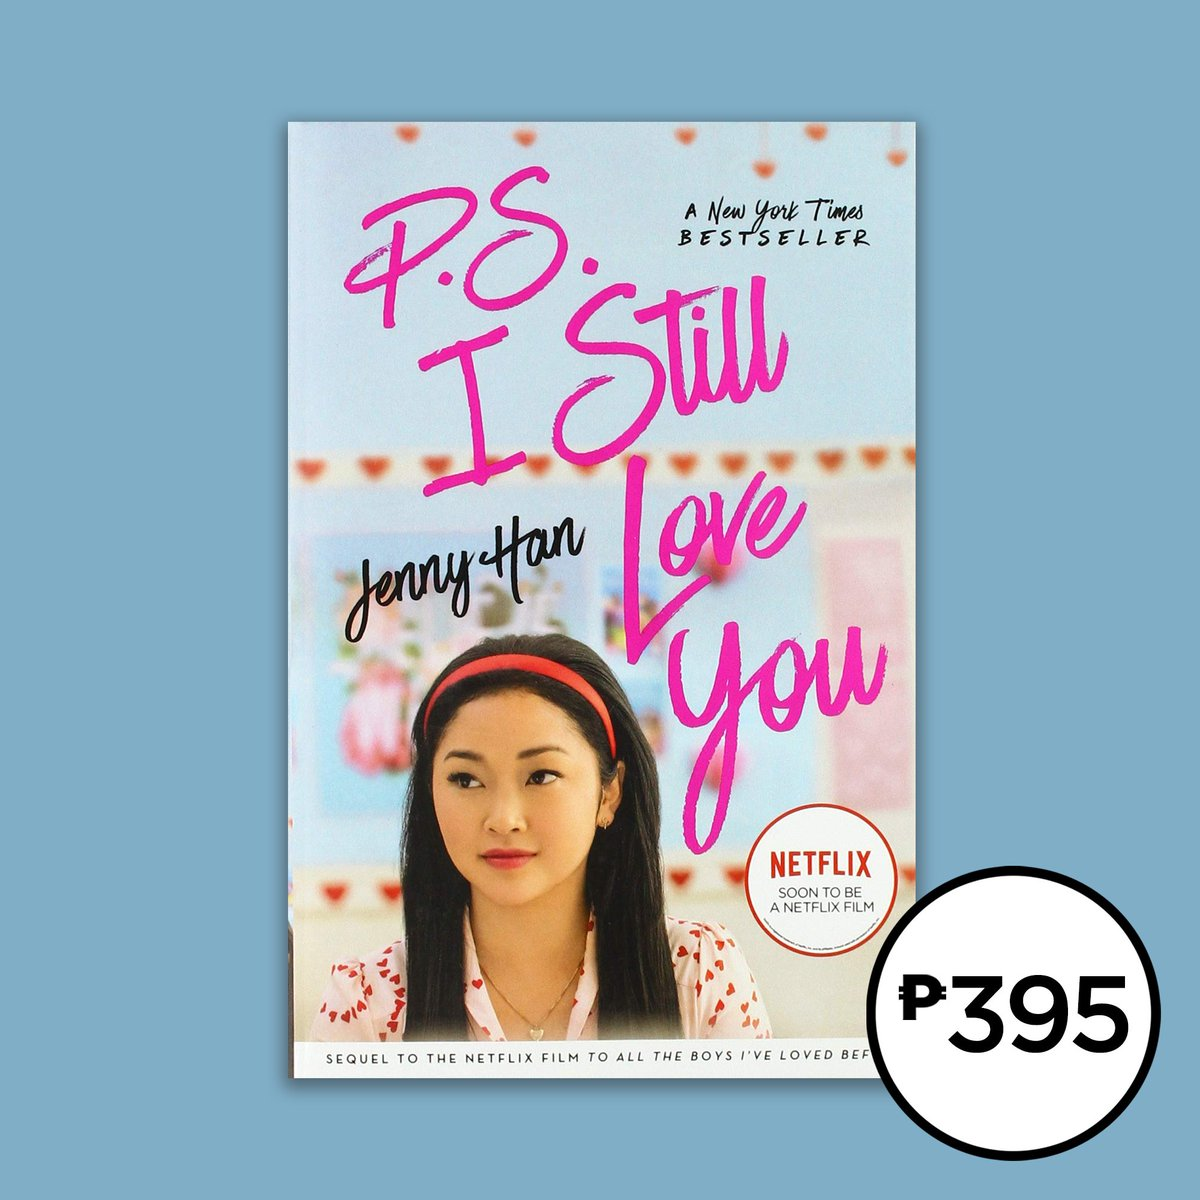 Are you excited to meet Noah AND watch P.S. I Still Love You this February? Don't forget to grab the movie tie-in editions of To All the Boys I've Loved Before and P.S. I Still Love You by!  Get them in selected branches. #NBSNewReads #NBSfinds #NBSeveryday